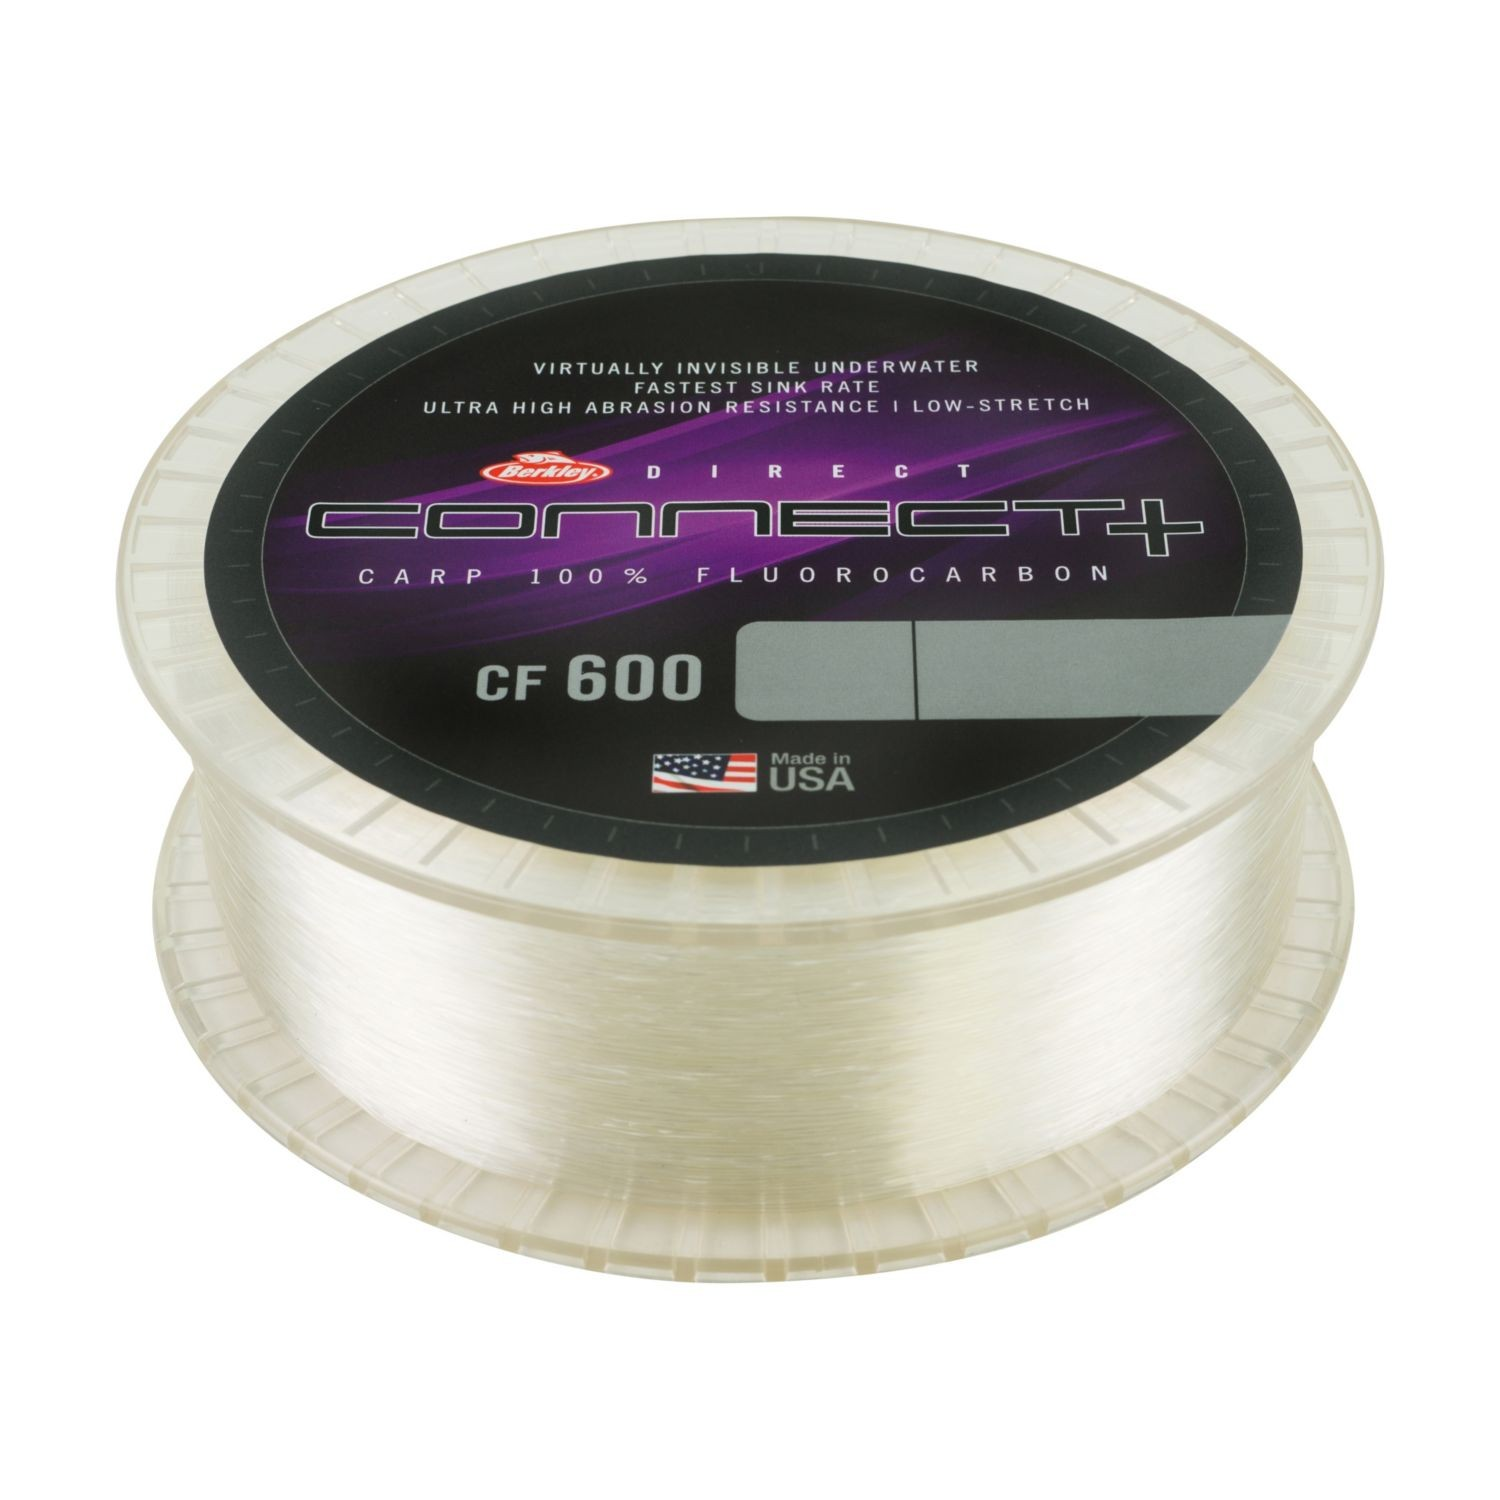 Berkley Connect+ CF600 100% Fluorocarbon